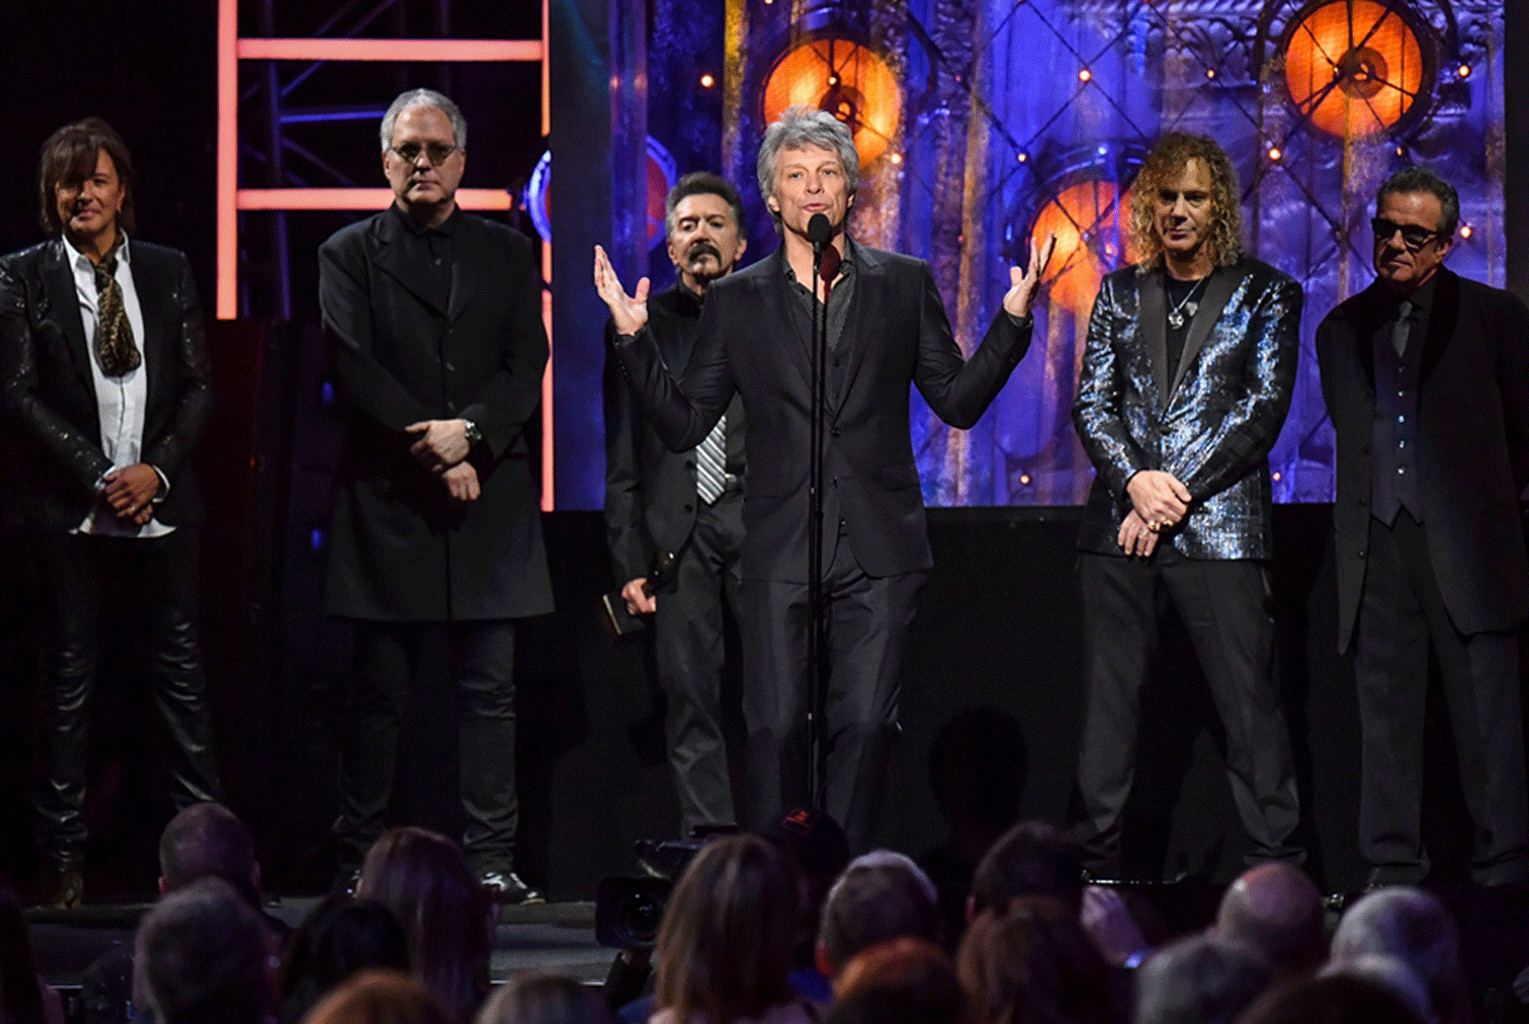 Bon Jovi, 33rd Annual Rock & Roll Hall of Fame Induction Ceremony